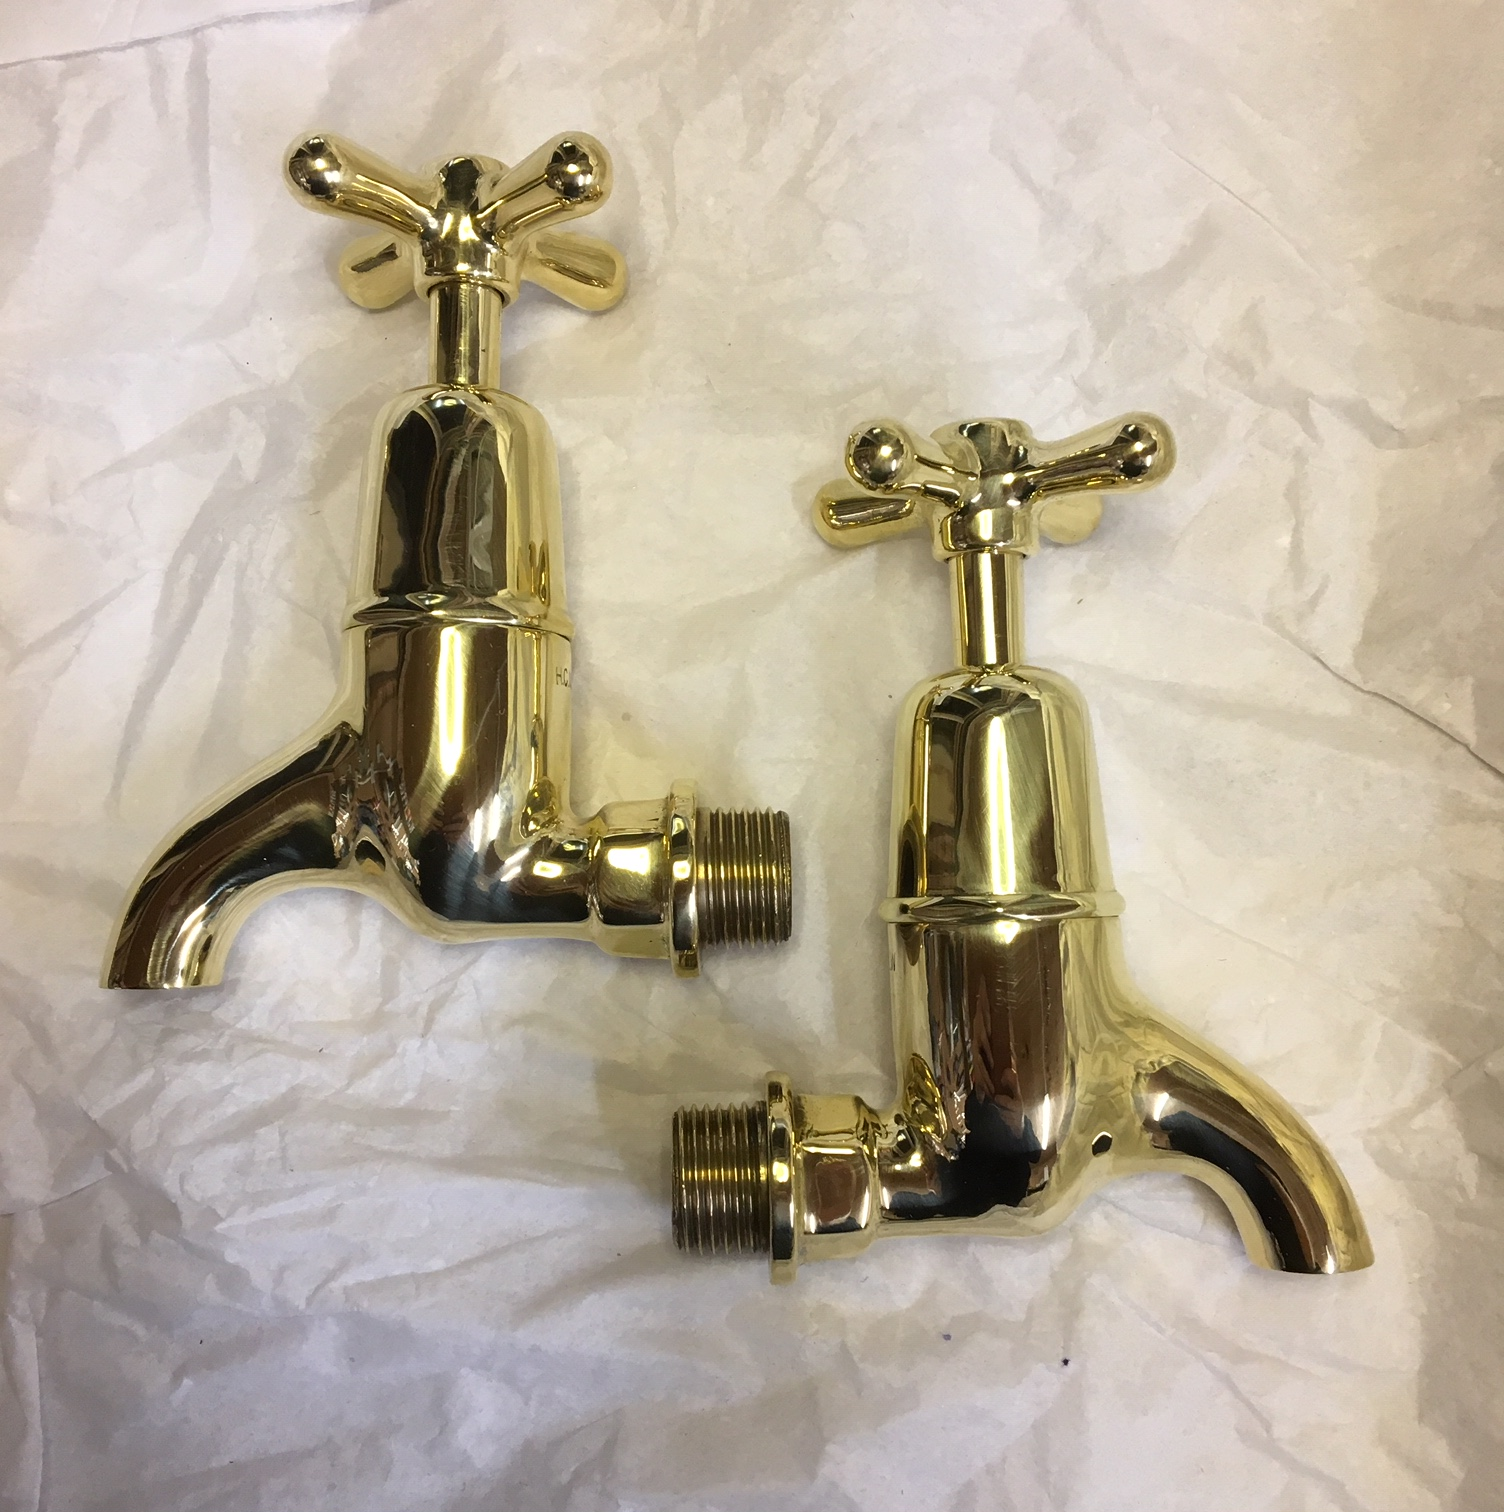 Polished Brass Bib taps – H.C.W.W. – FOR SALE